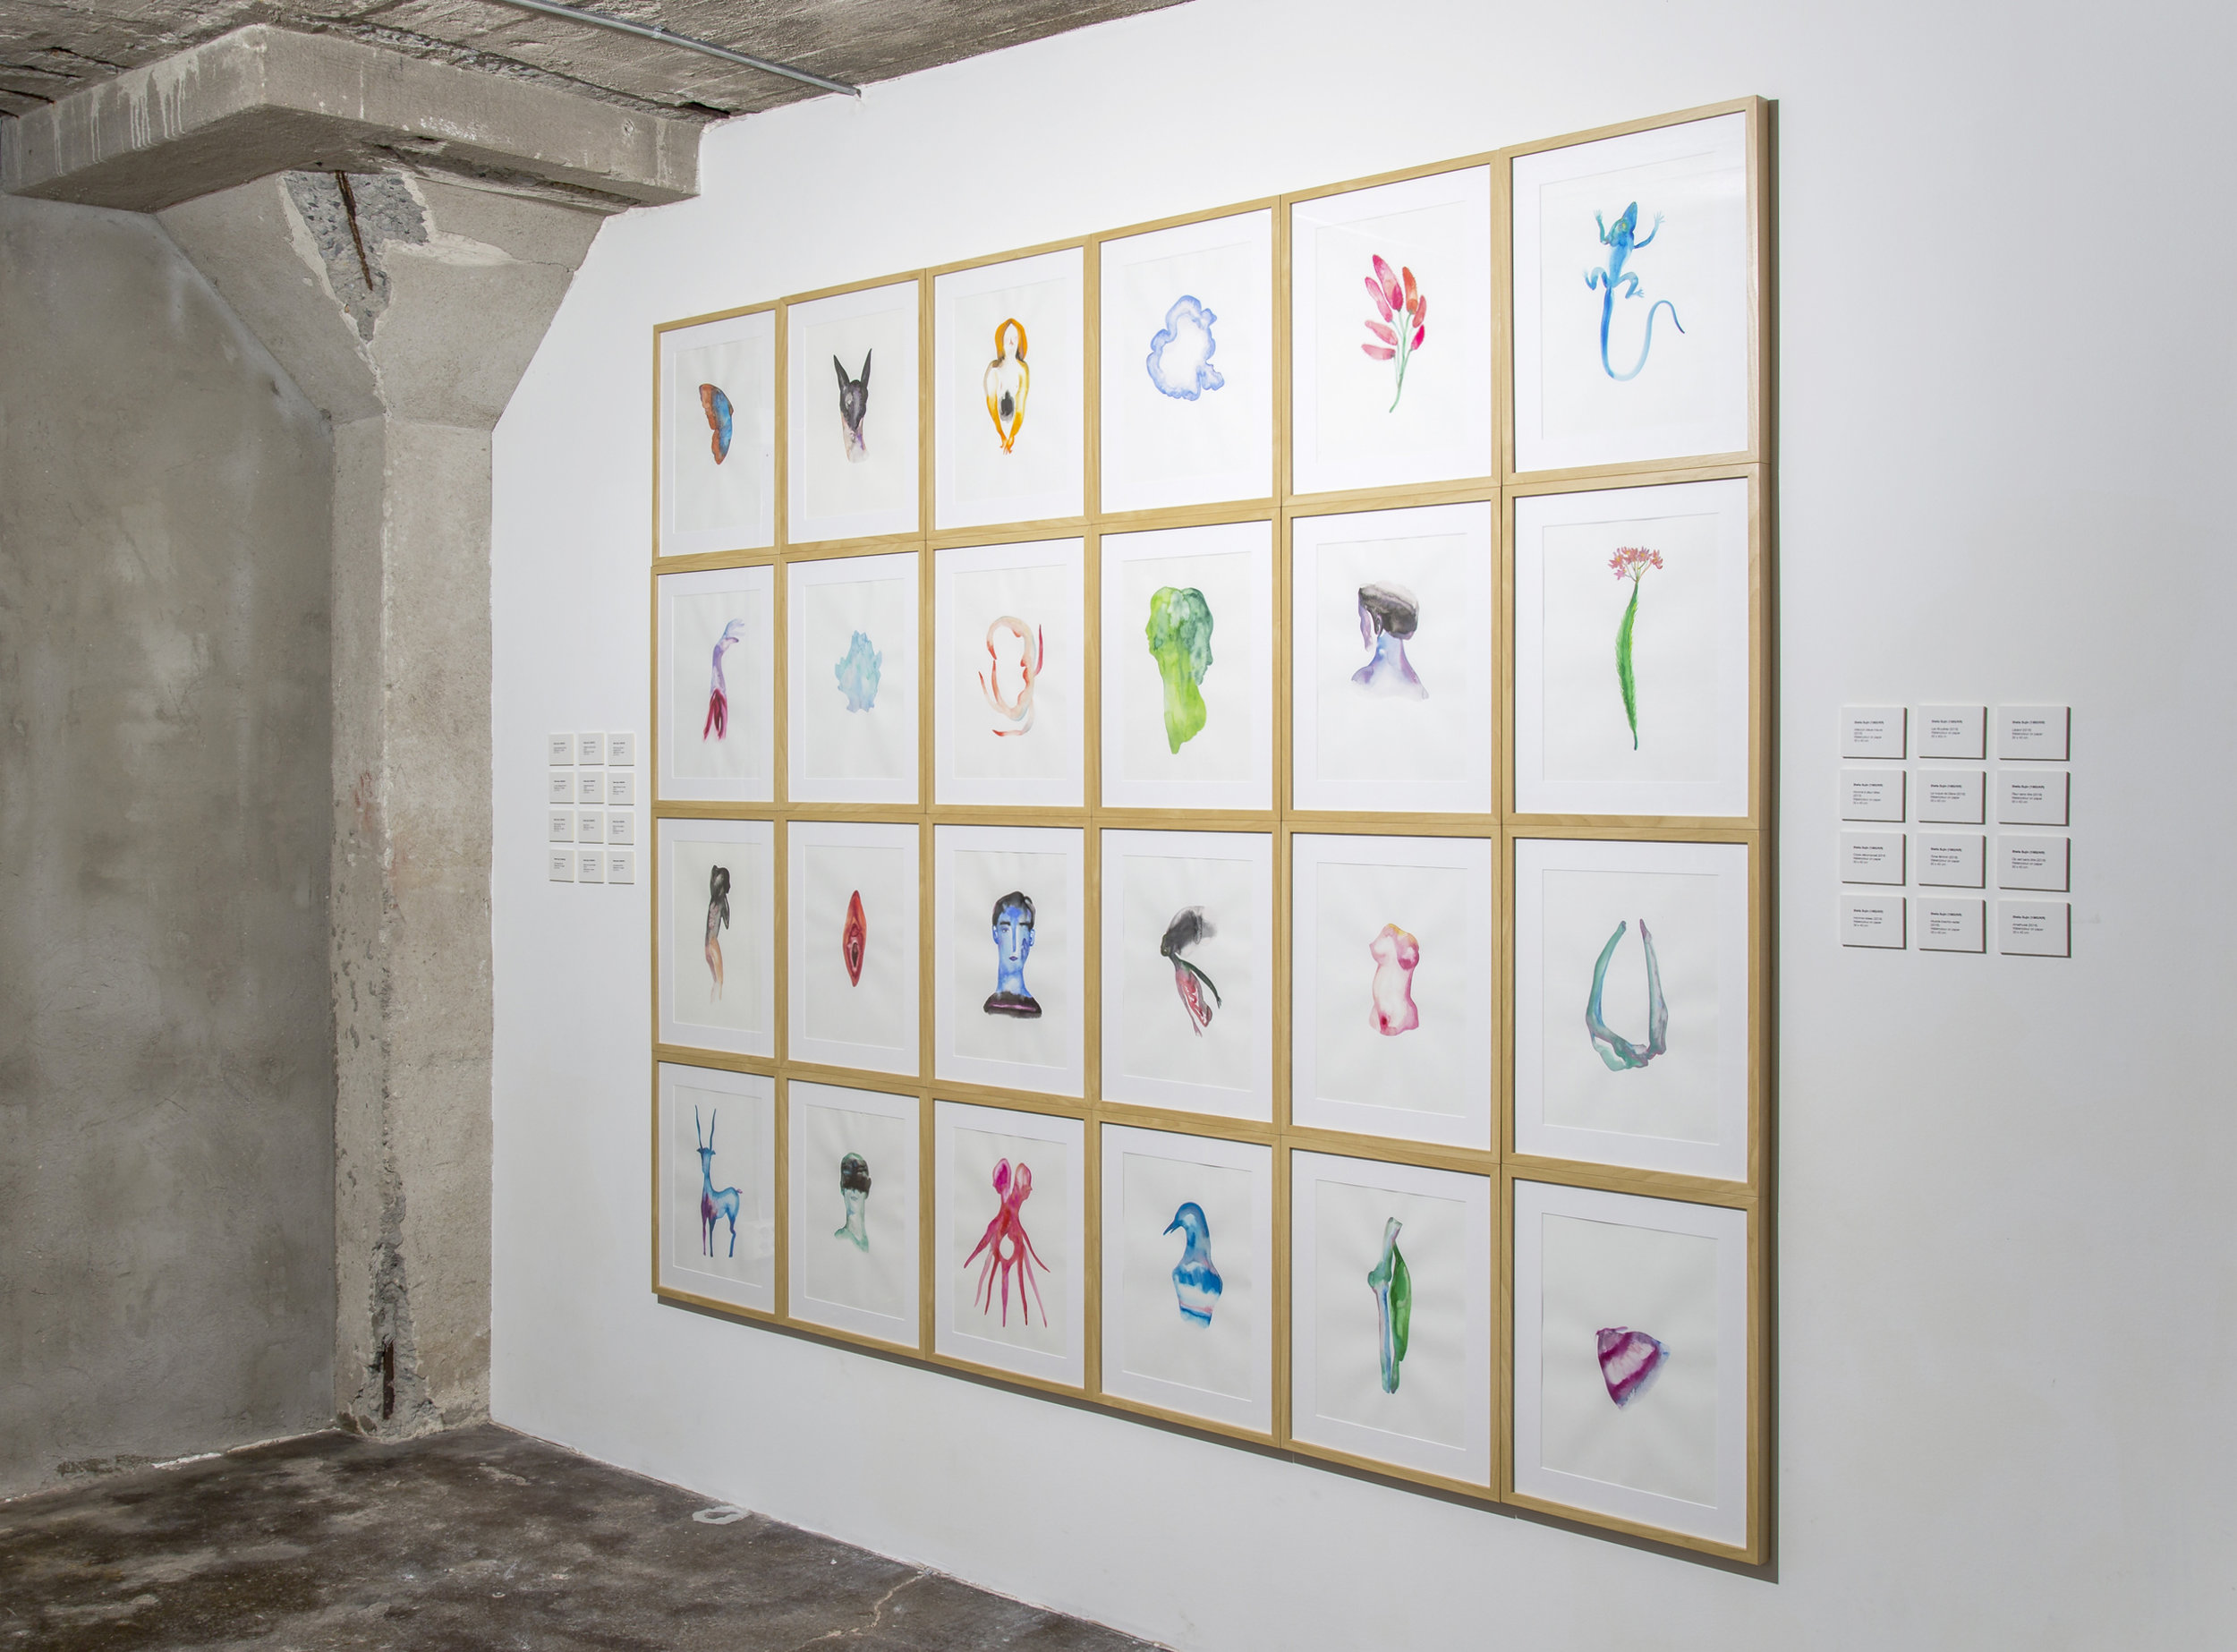 Journey of a dead hunter  , 2016, installation made of 24 watercolor drawings on paper, 210x255cm  Photo credit: Darla Nam